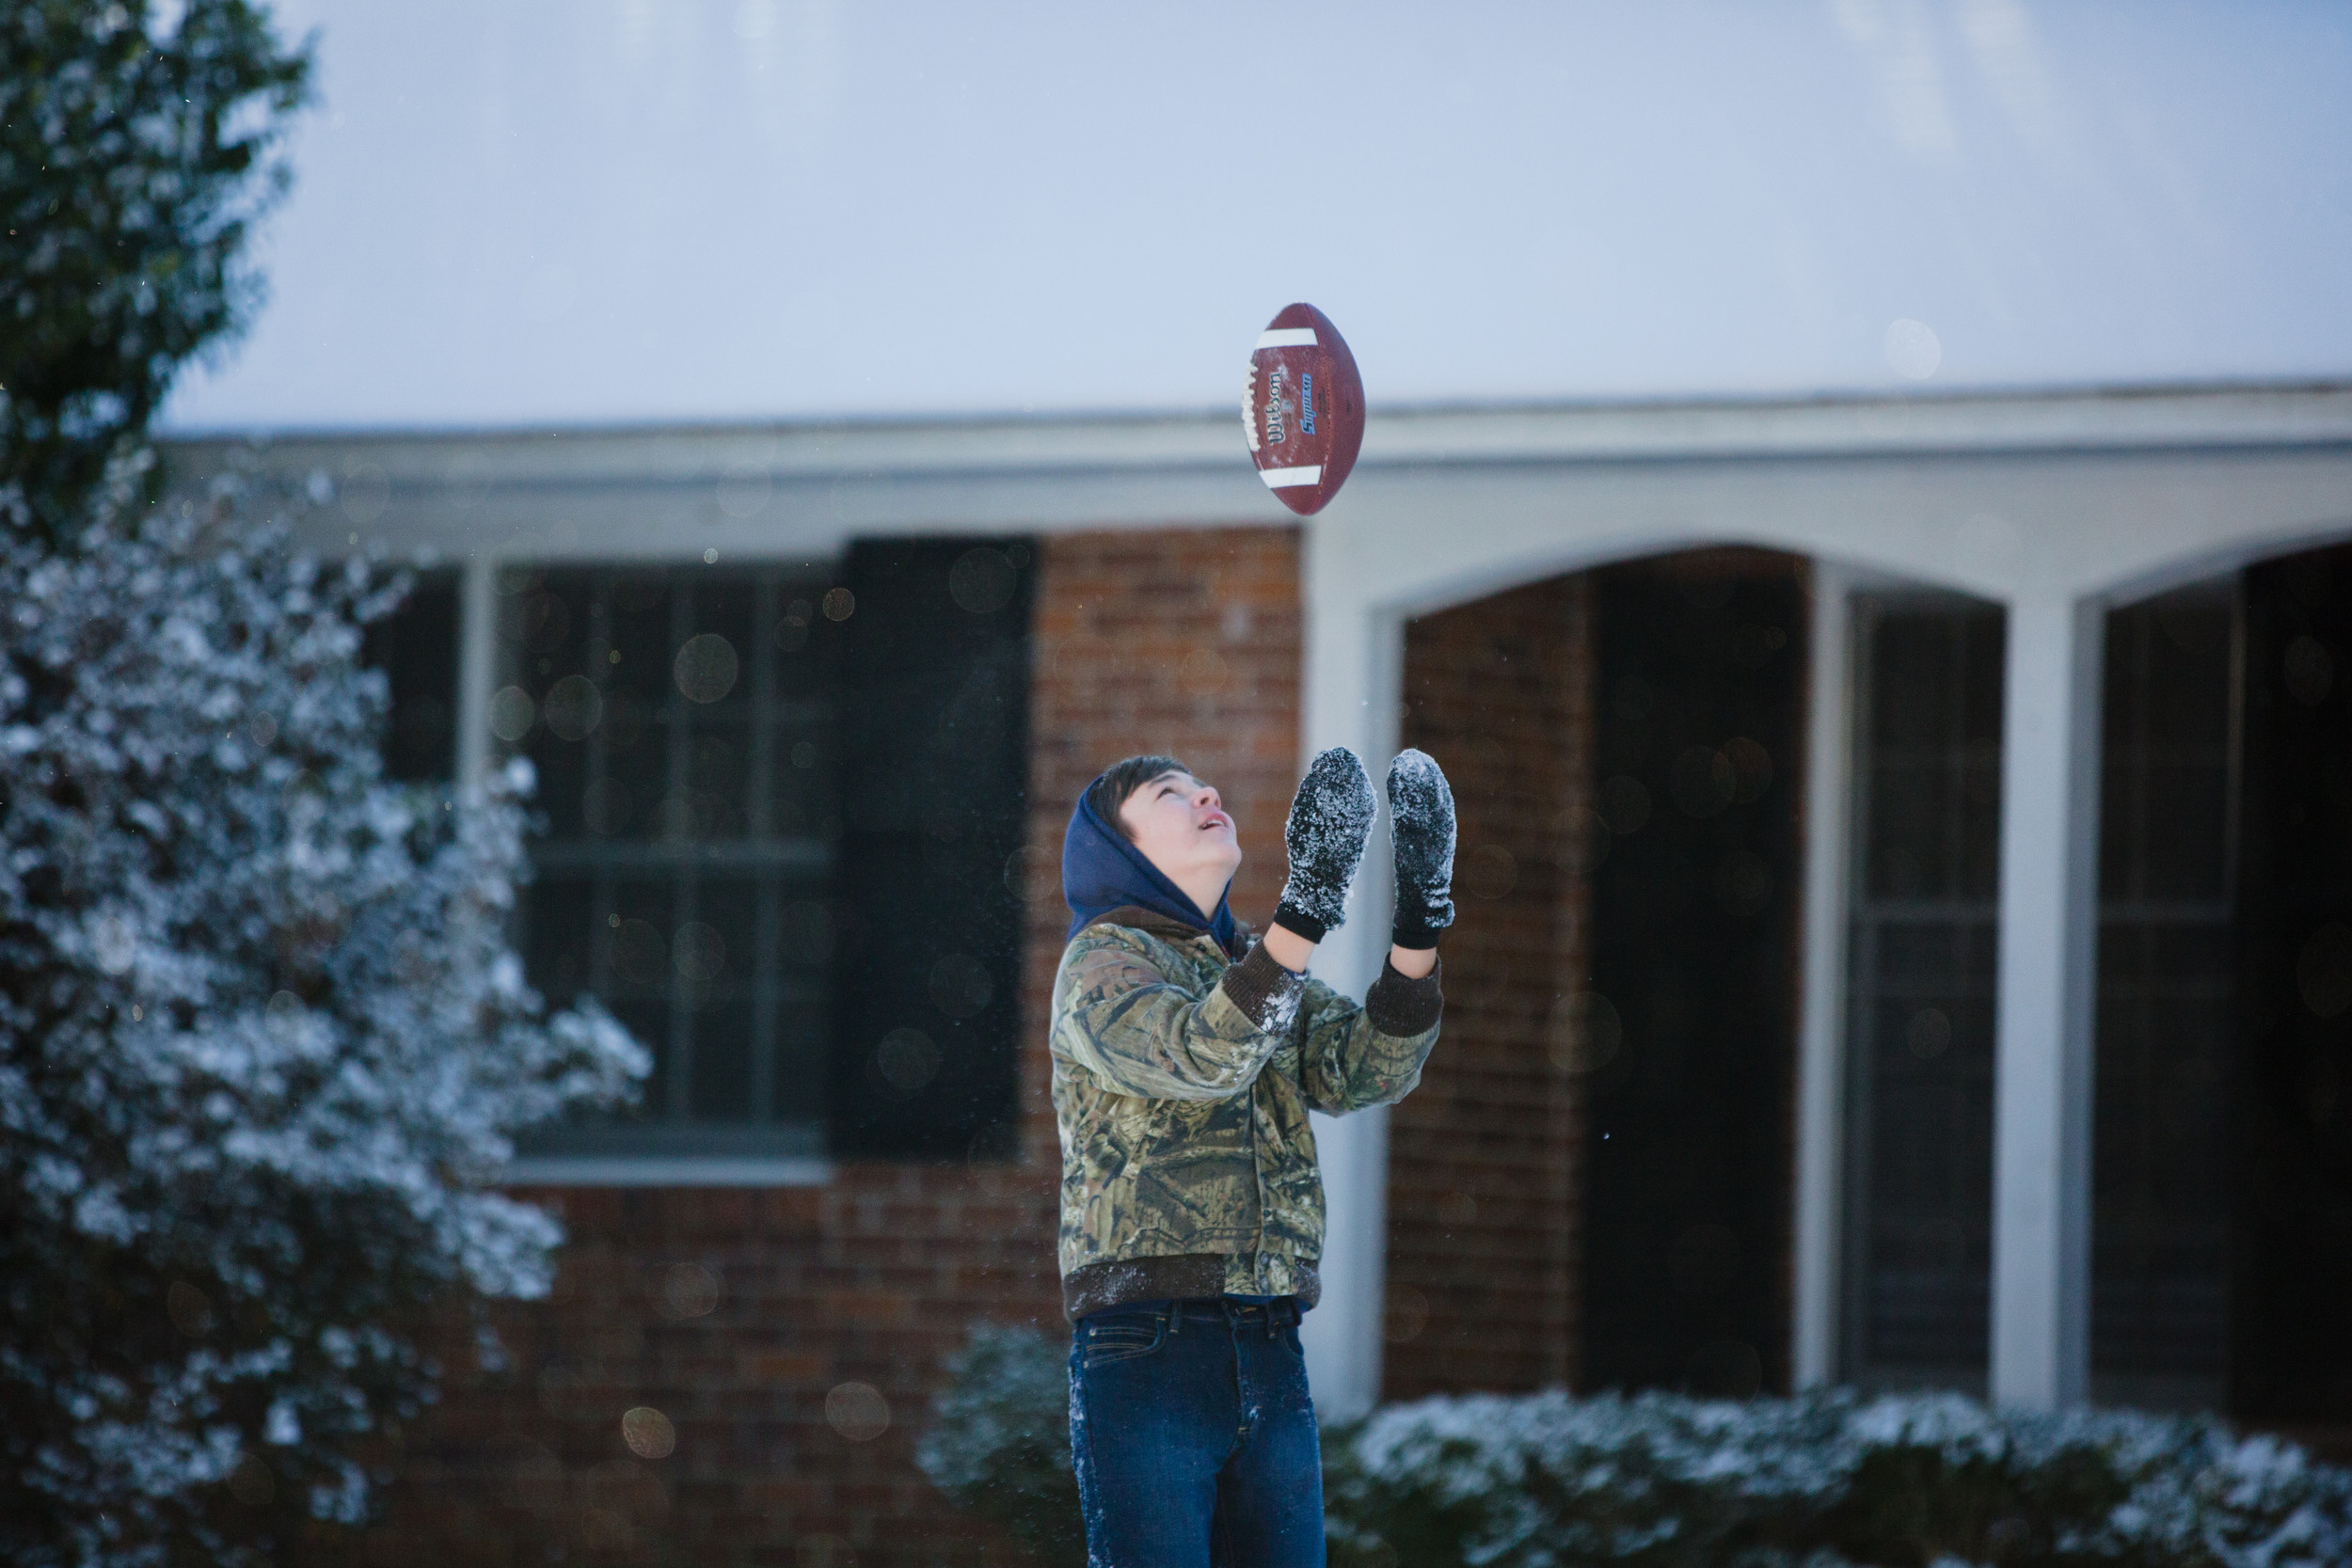 Trace Bailey tosses a football in a front yard on Richardson Street on Thursday morning.